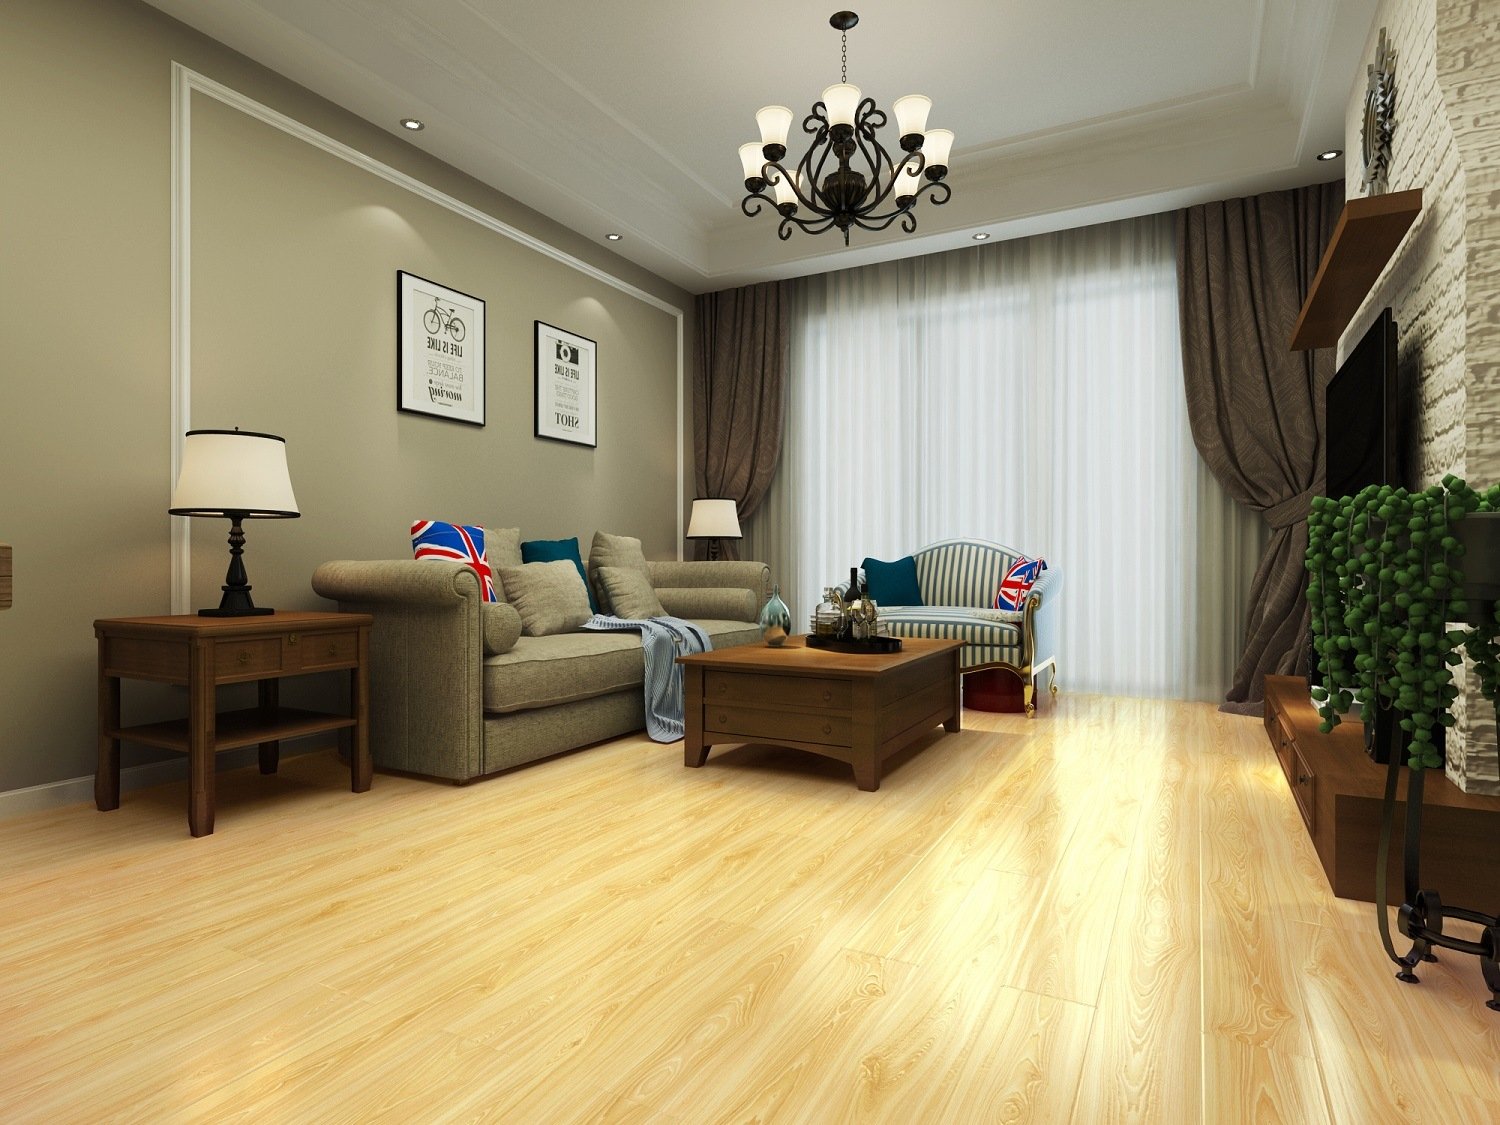 12mm Waterproof Embossed Parquet Laminate Flooring for Living Room